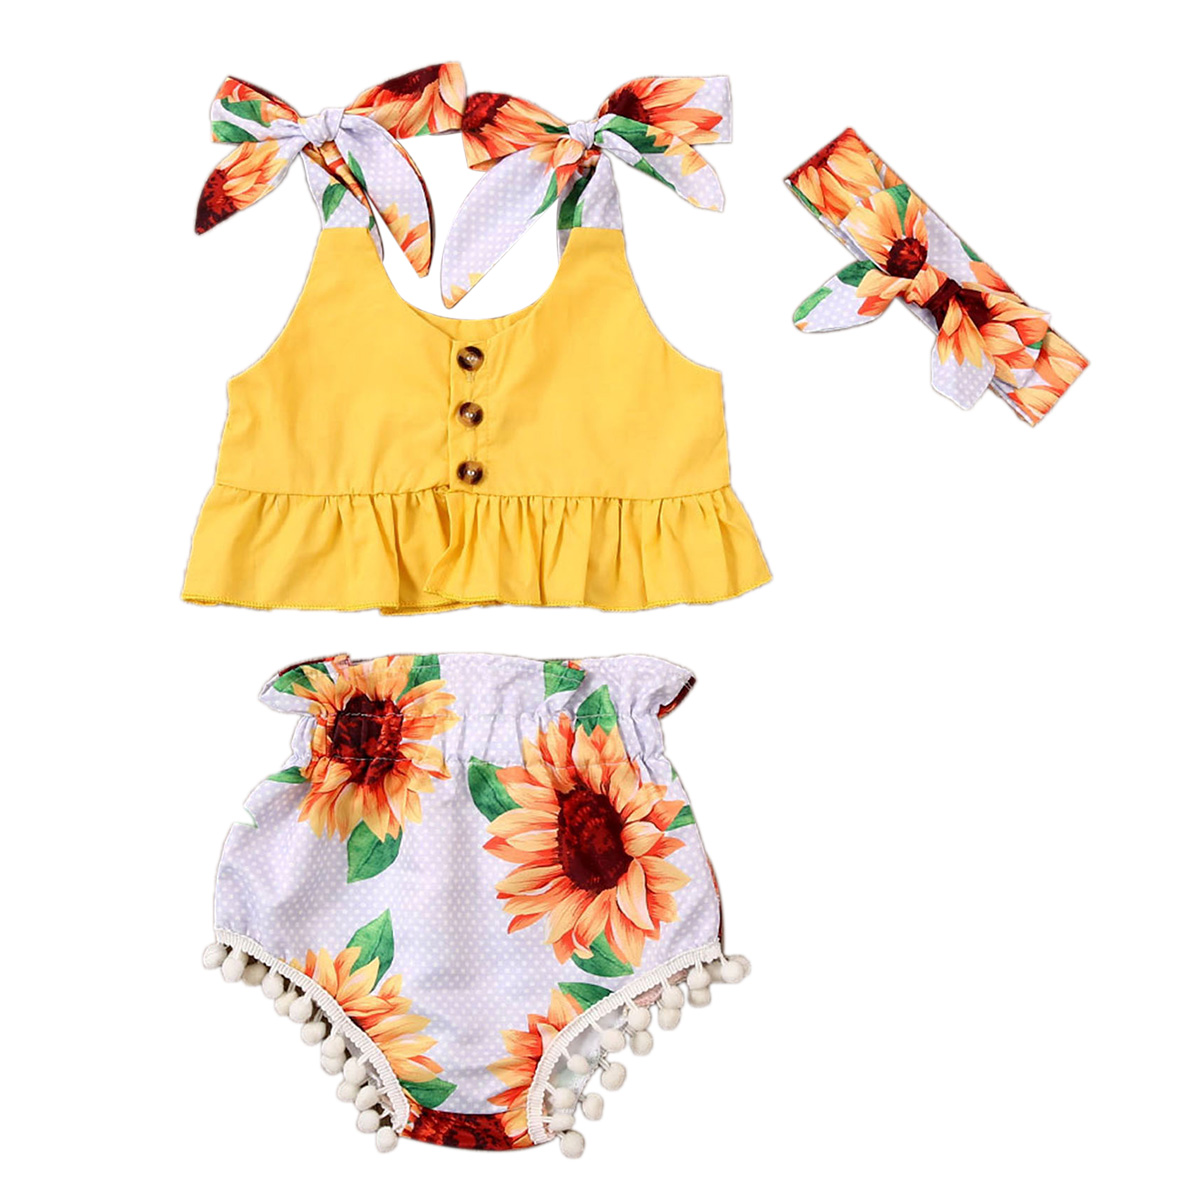 Toddler Baby Girl Clothes Set 3Pcs Sleeveles Outfit Crop Tops Headband Camouflage Short Pants